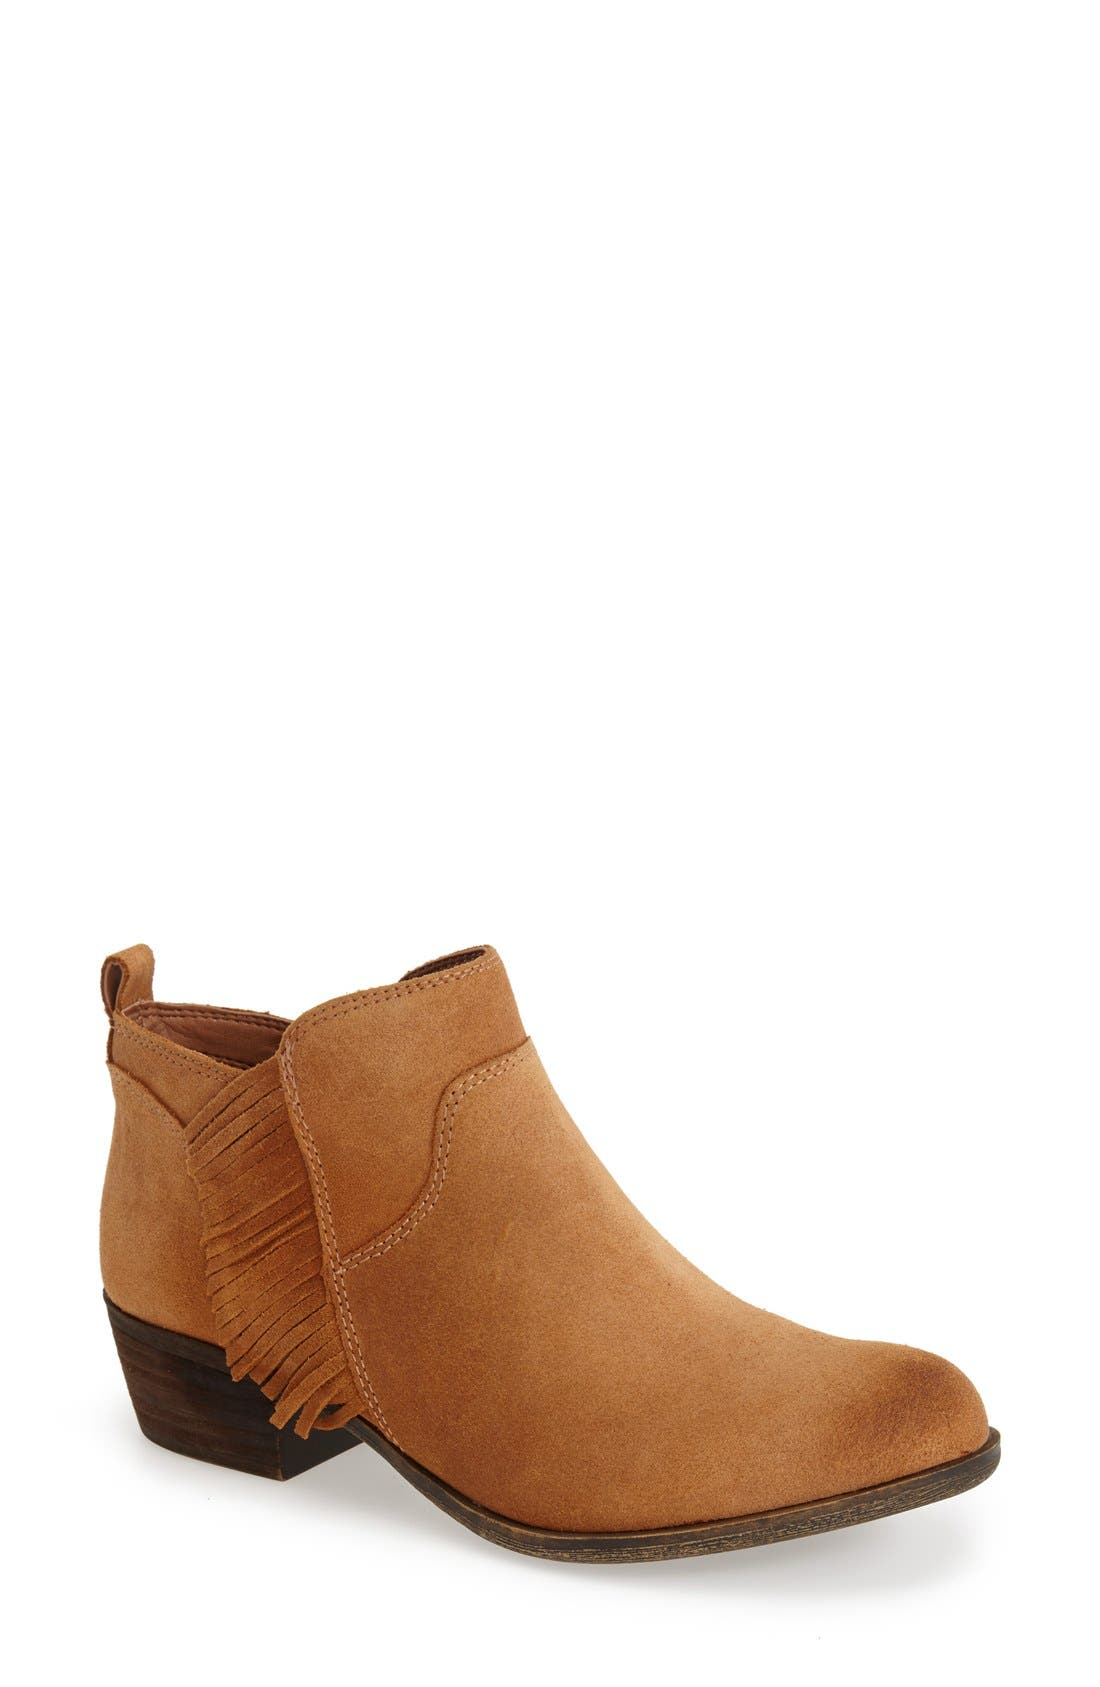 Alternate Image 1 Selected - Lucky Brand 'Banji' Fringe Bootie (Women)